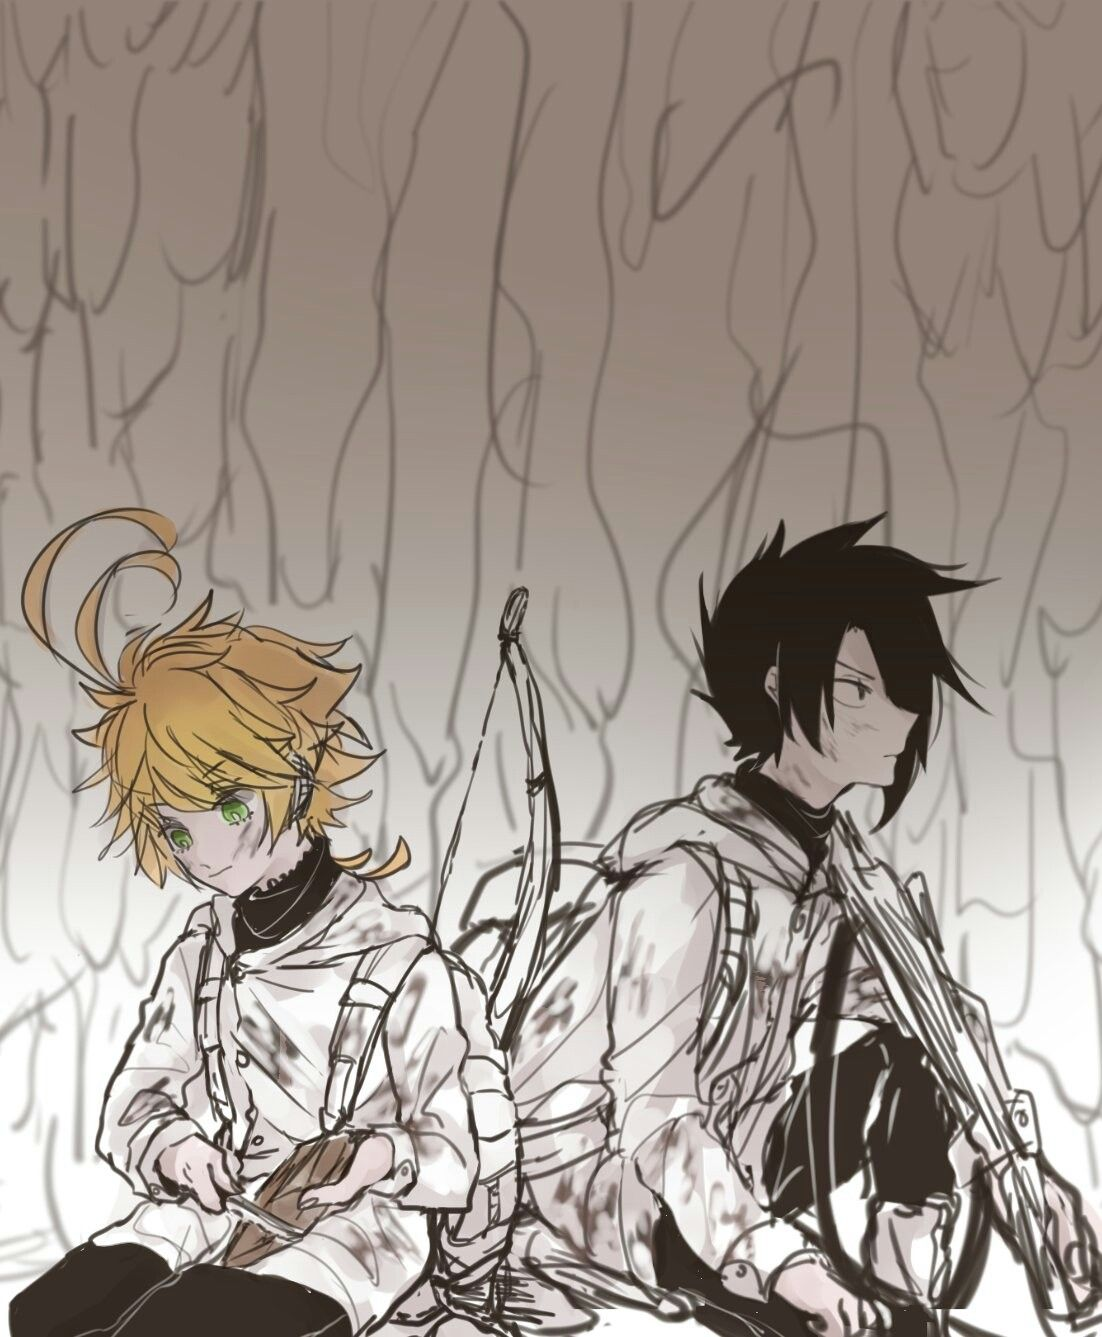 Pin by Viva Berry on The Promised Neverland | Neverland